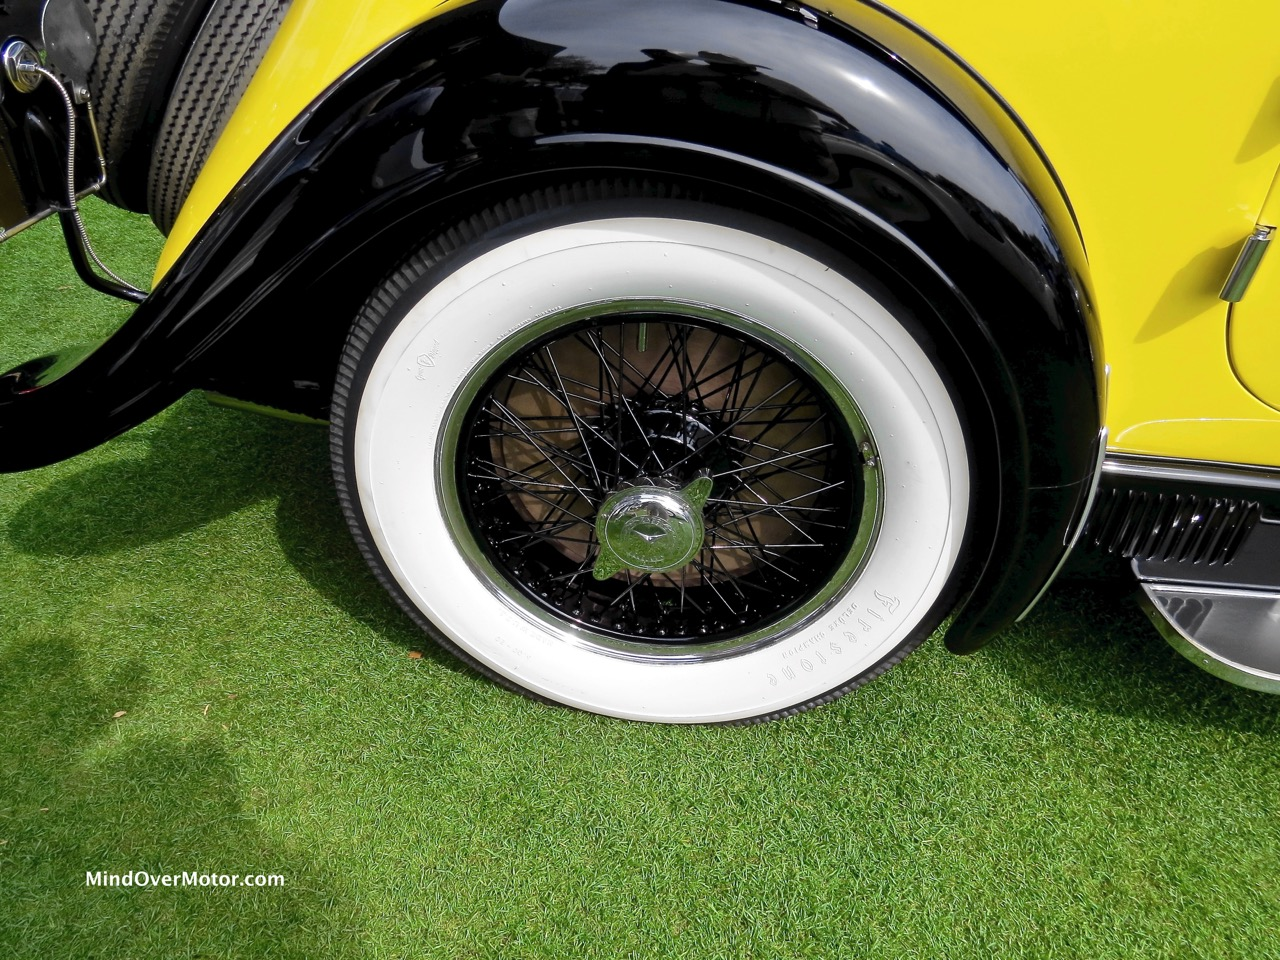 1928 Mercedes-Benz S Wheel